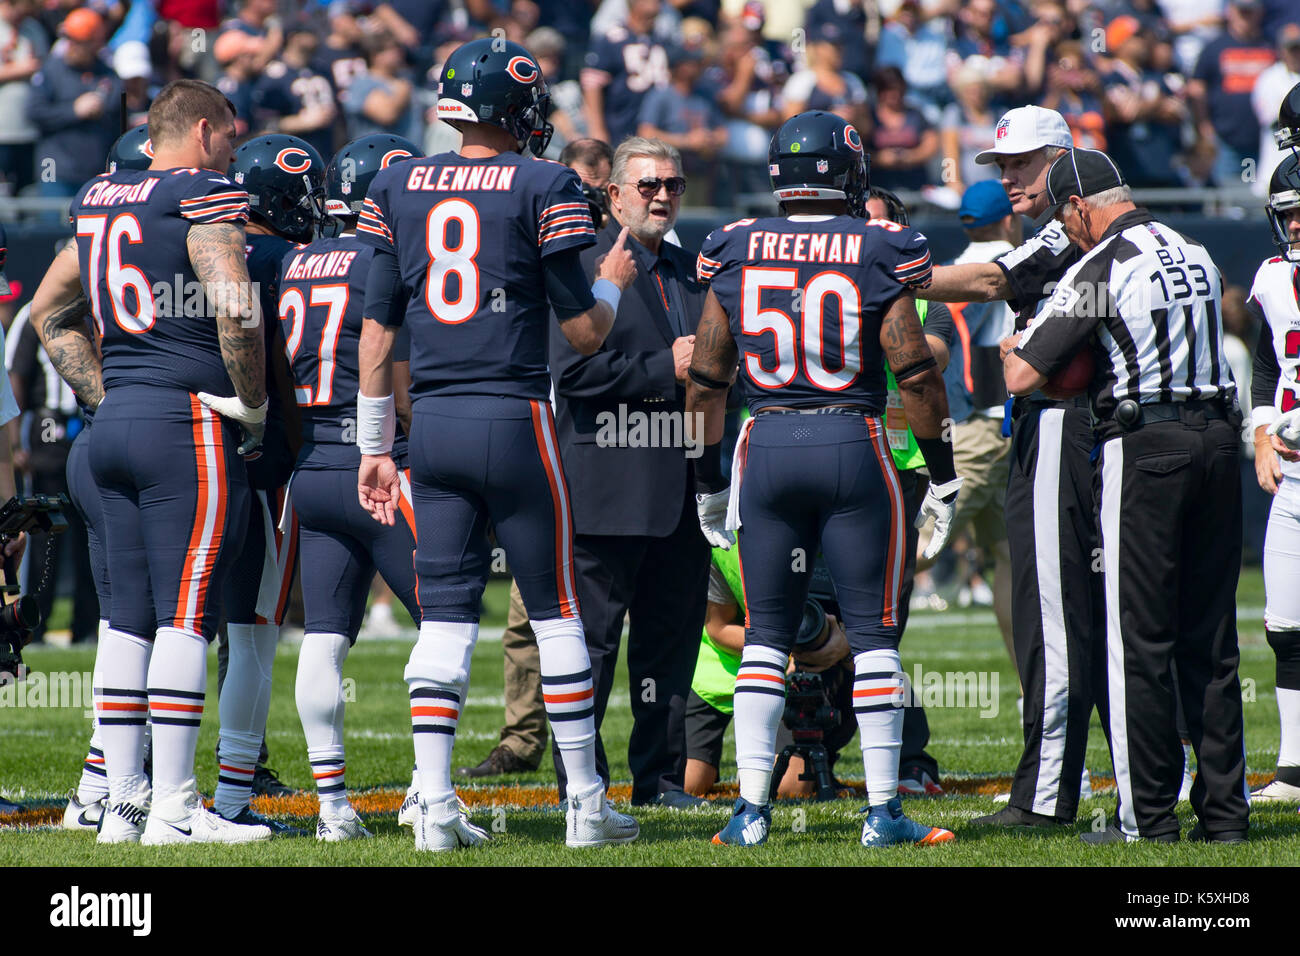 Chicago, Illinois, USA. 10th Sep, 2017. - Former Chicago Bears Head Coach Mike Ditka (center) during the coin flip before the NFL Game between the Atlanta Falcons and Chicago Bears at Soldier Field in Chicago, IL. Credit: csm/Alamy Live News - Stock Image